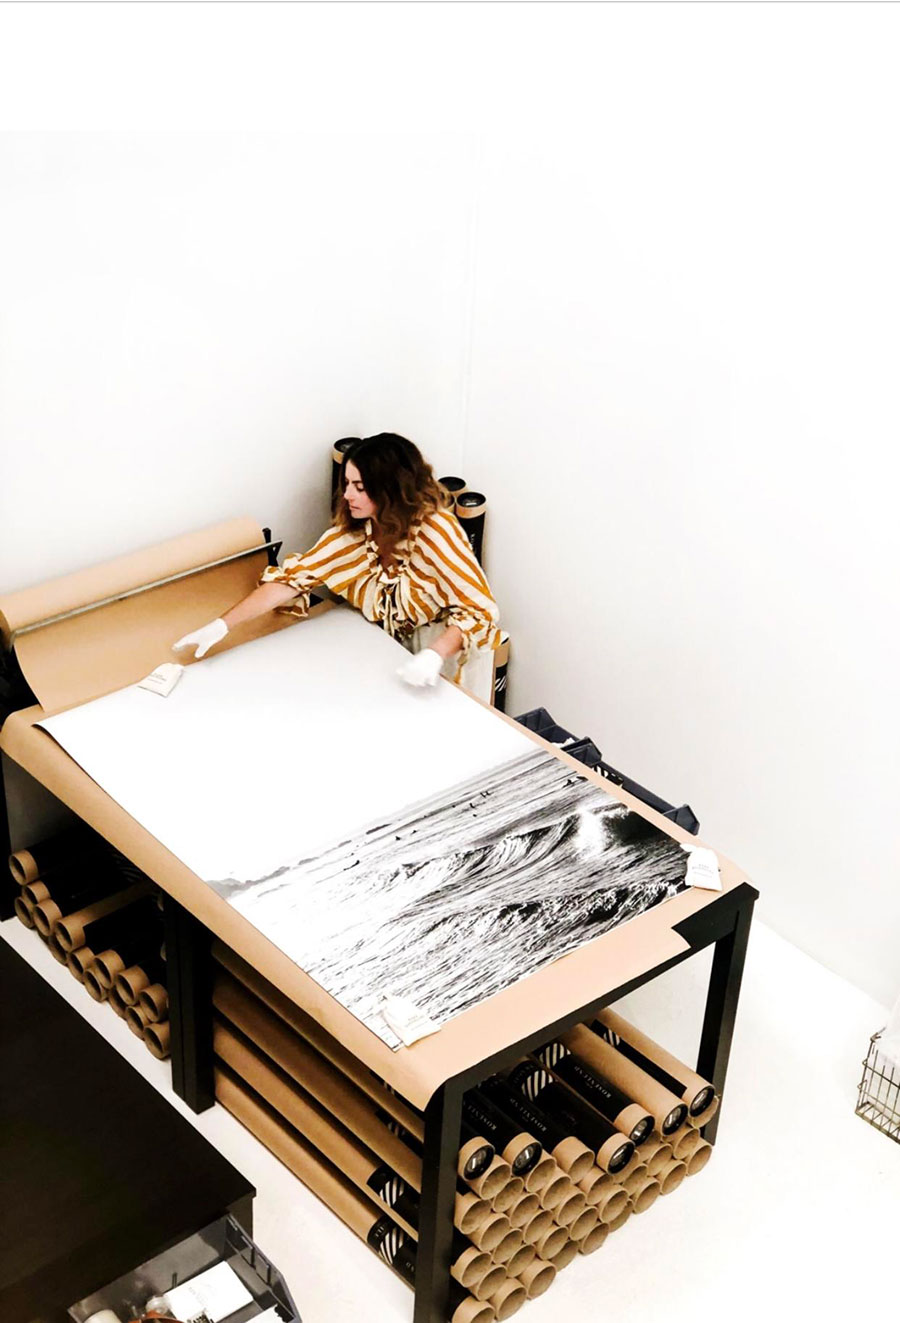 Kara Rosenlund extra large prints in the studio